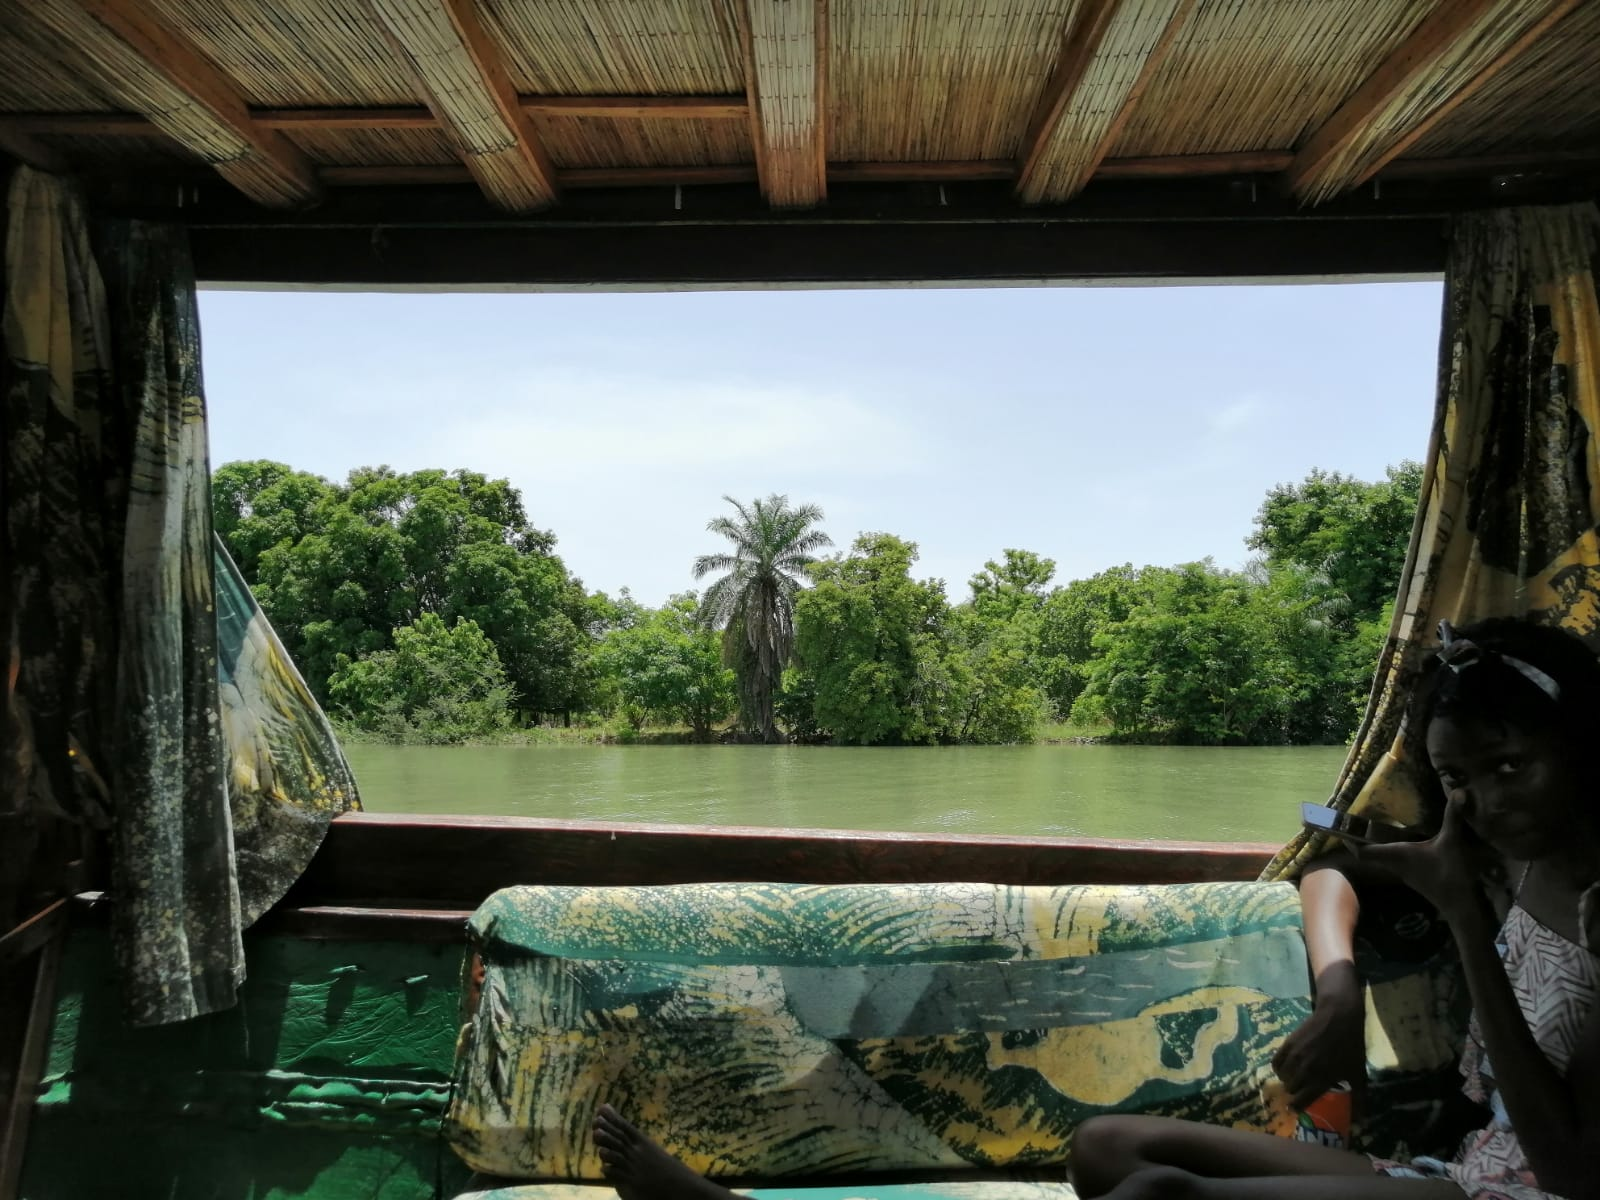 FlusskreuzfahrtFenster 1 - THE GAMBIA 2021/22: WHY IS WEST AFRICA'S BEST RESORT AND SPA A PERFECT SPOT FOR A WINTER ESCAPE?